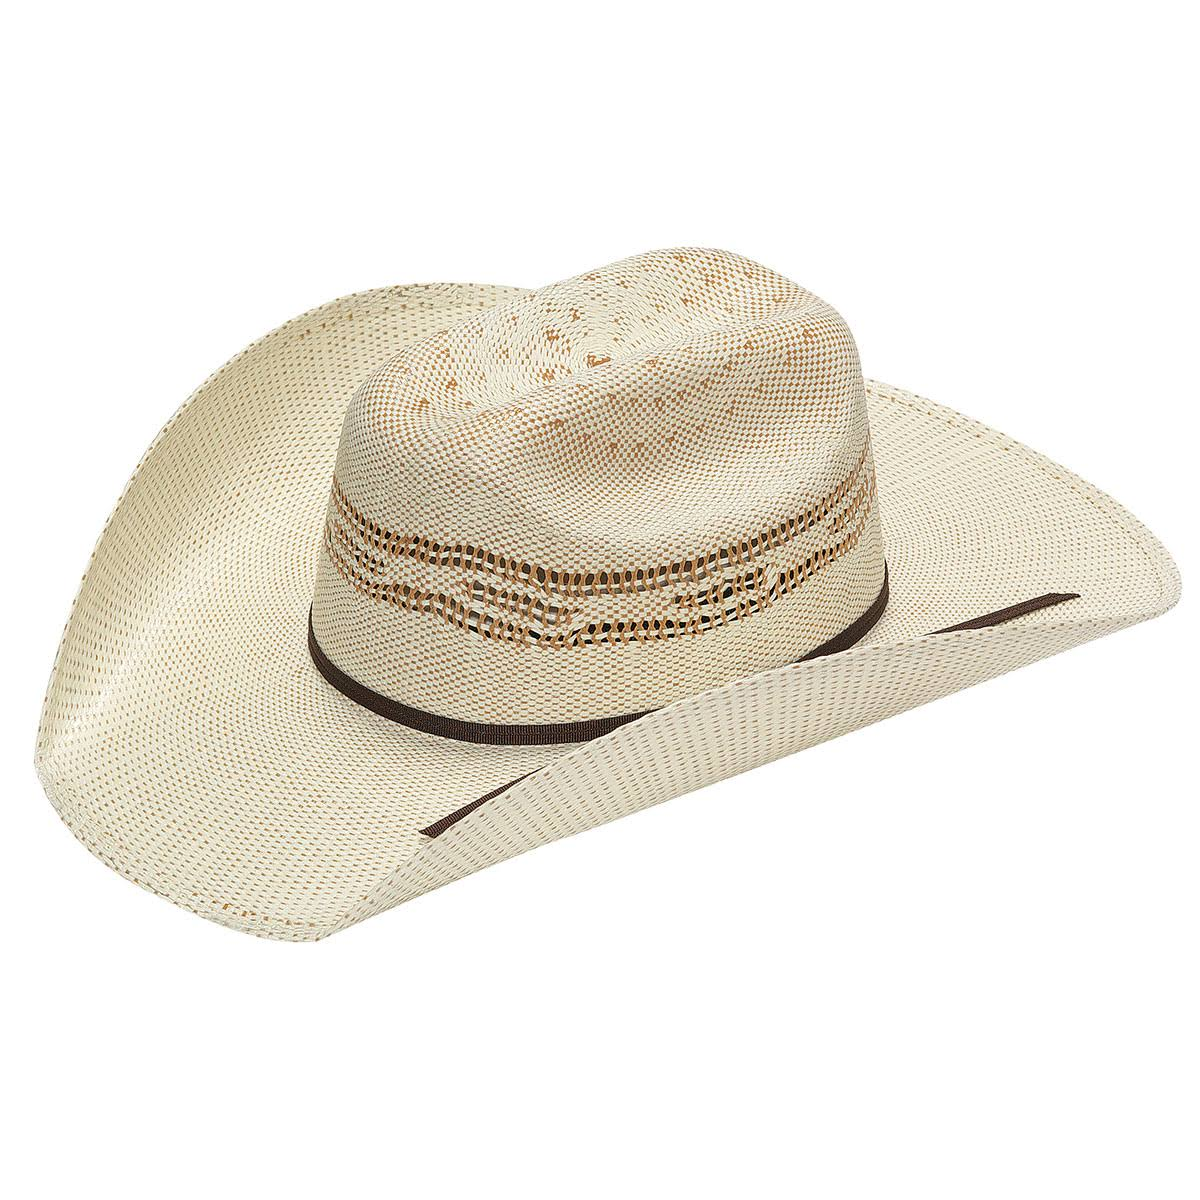 Twister T71630-L Kids Catteman Bangora Hat Tan - X-Large, Tan